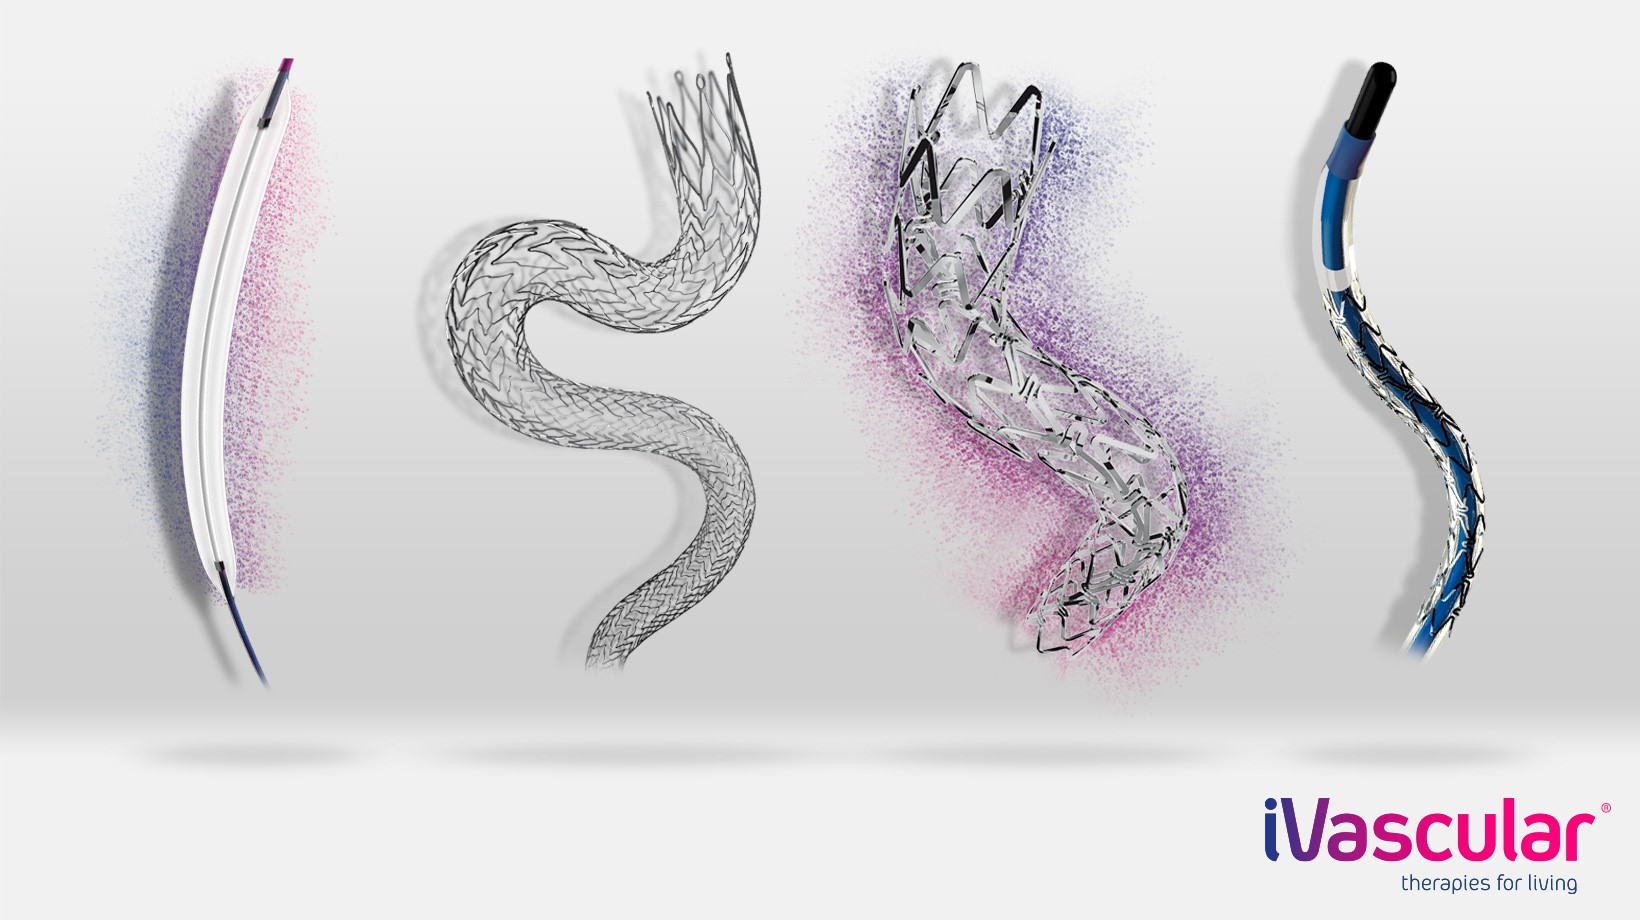 iVascular SLU received approvalfor selling its coronary and peripheral products in India